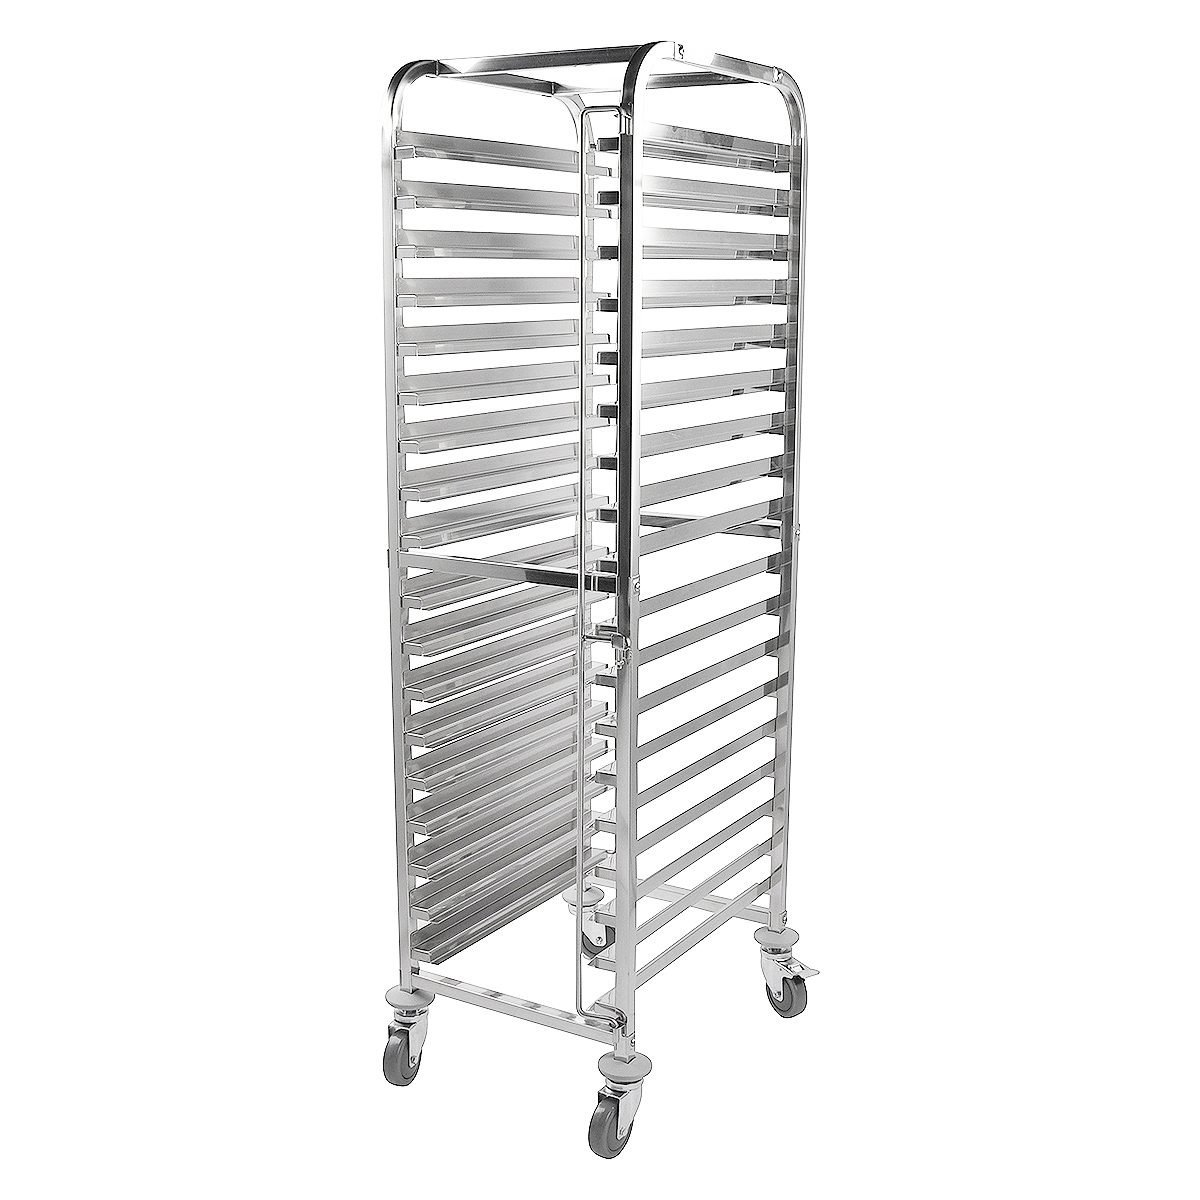 New Imettos 301006 Racking Trolley For Sale